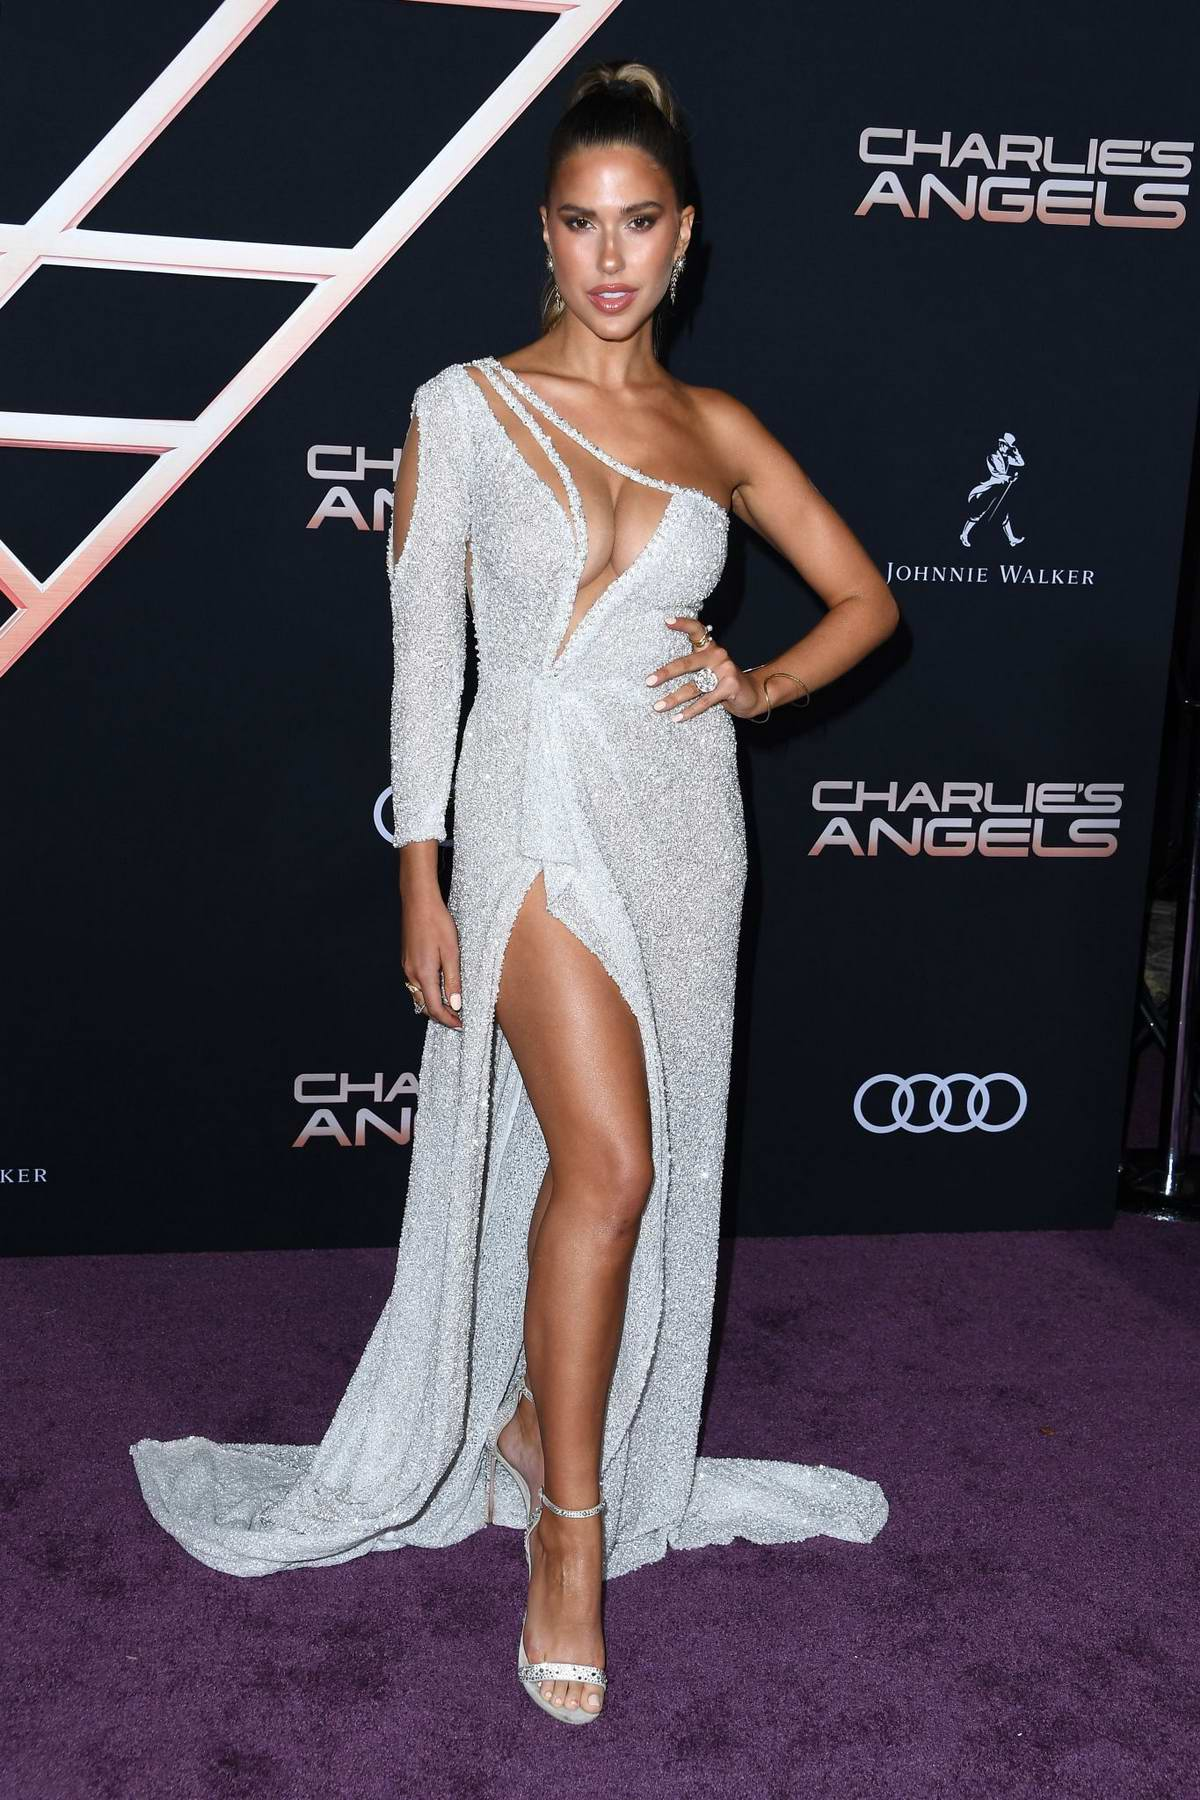 Kara Del Toro attends the Premiere of 'Charlie's Angels' at Westwood Regency Theater in Los Angeles